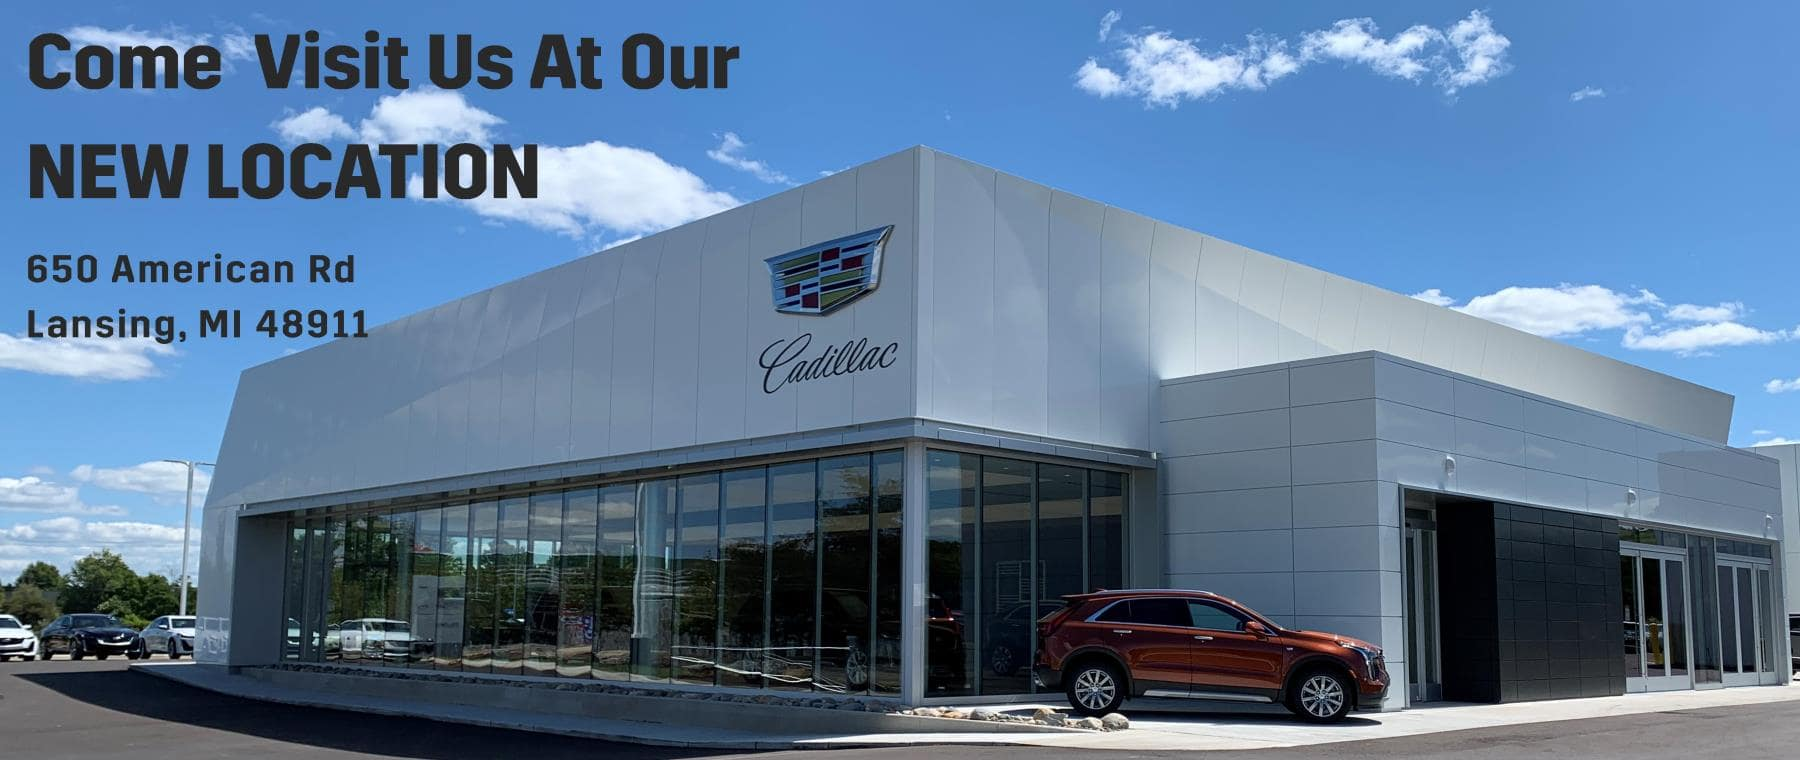 Visit us at our new location 632 American Rd Lansing, MI 48911